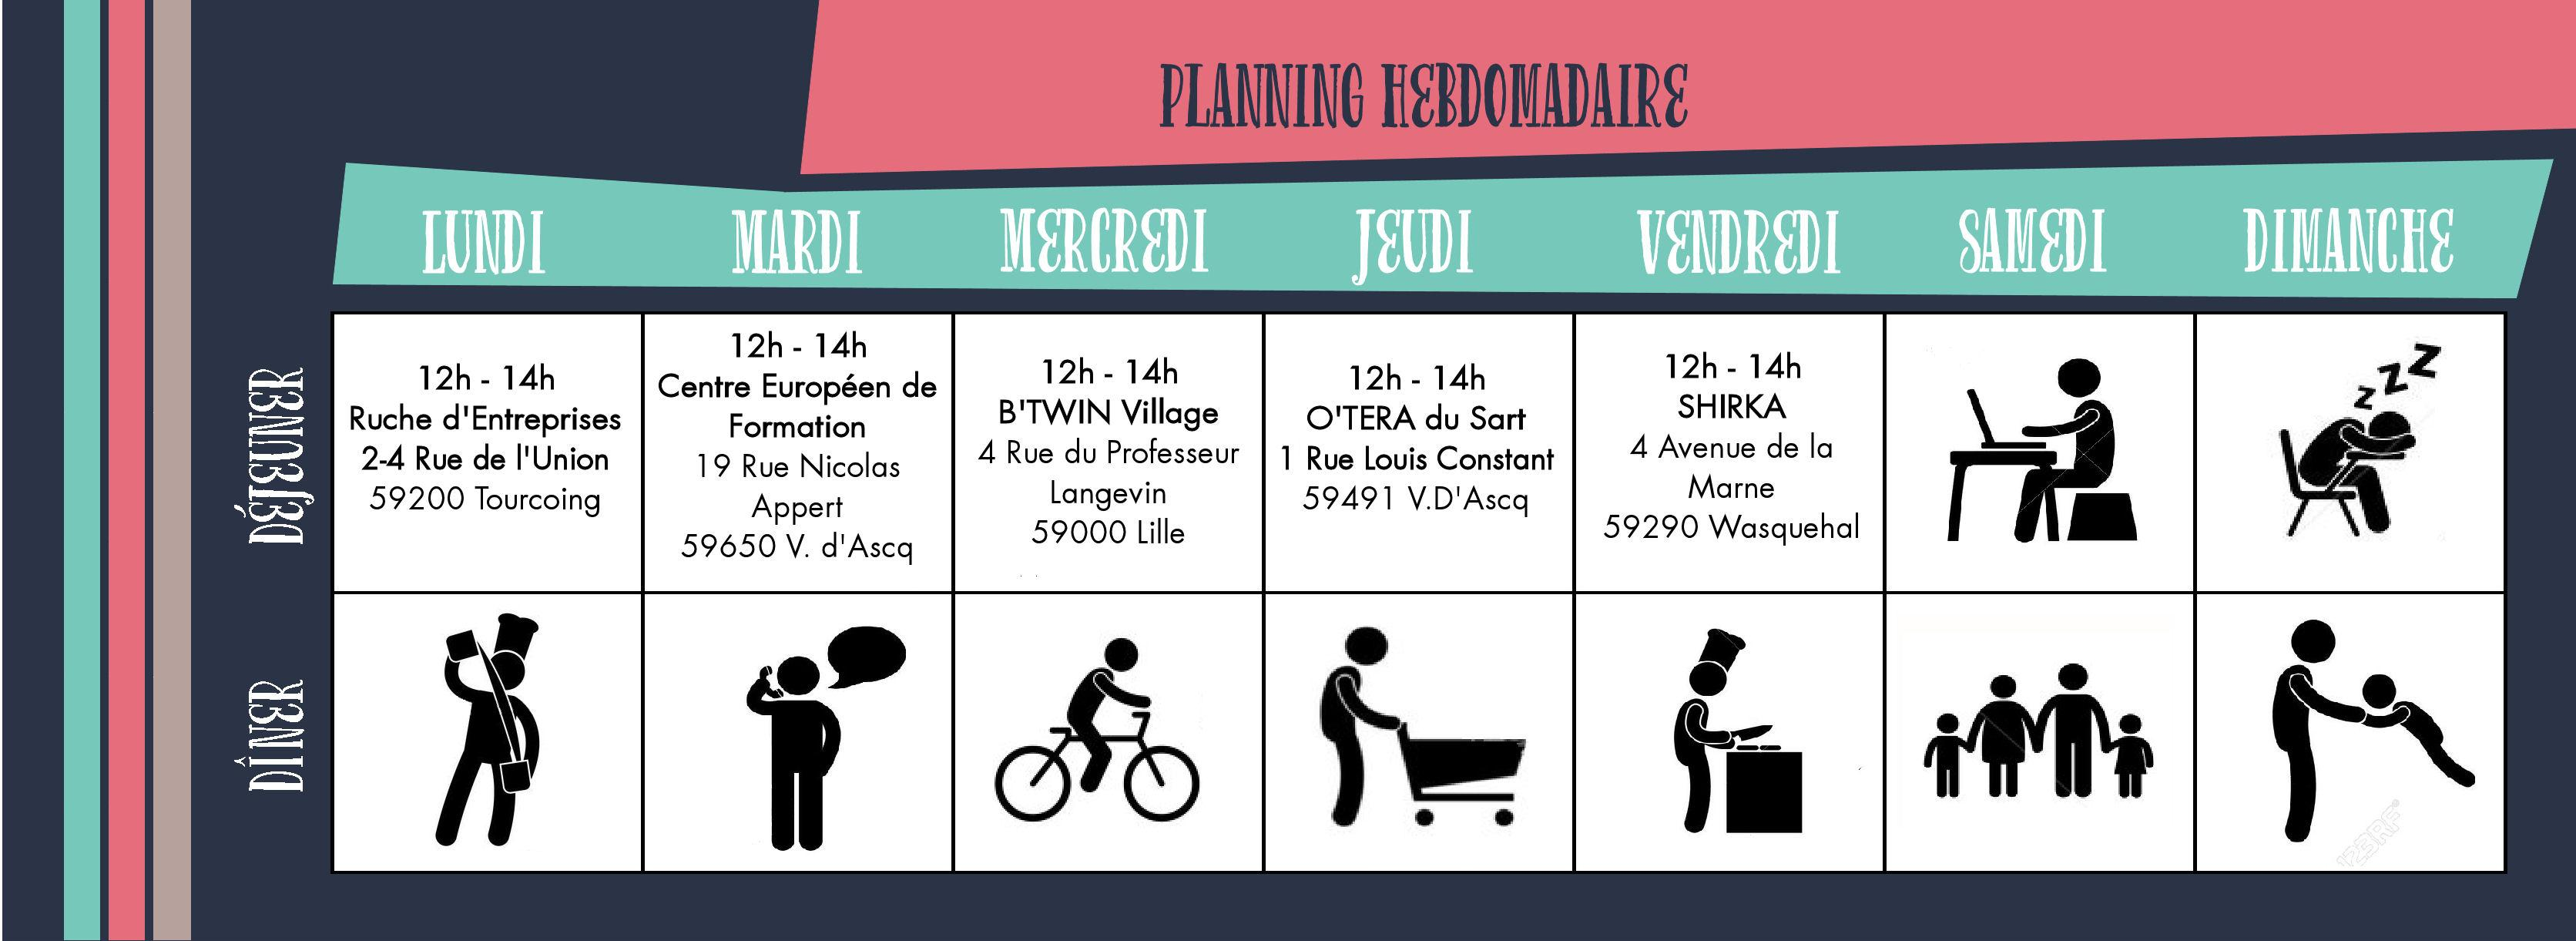 Planning%20hebdomadaire[1]